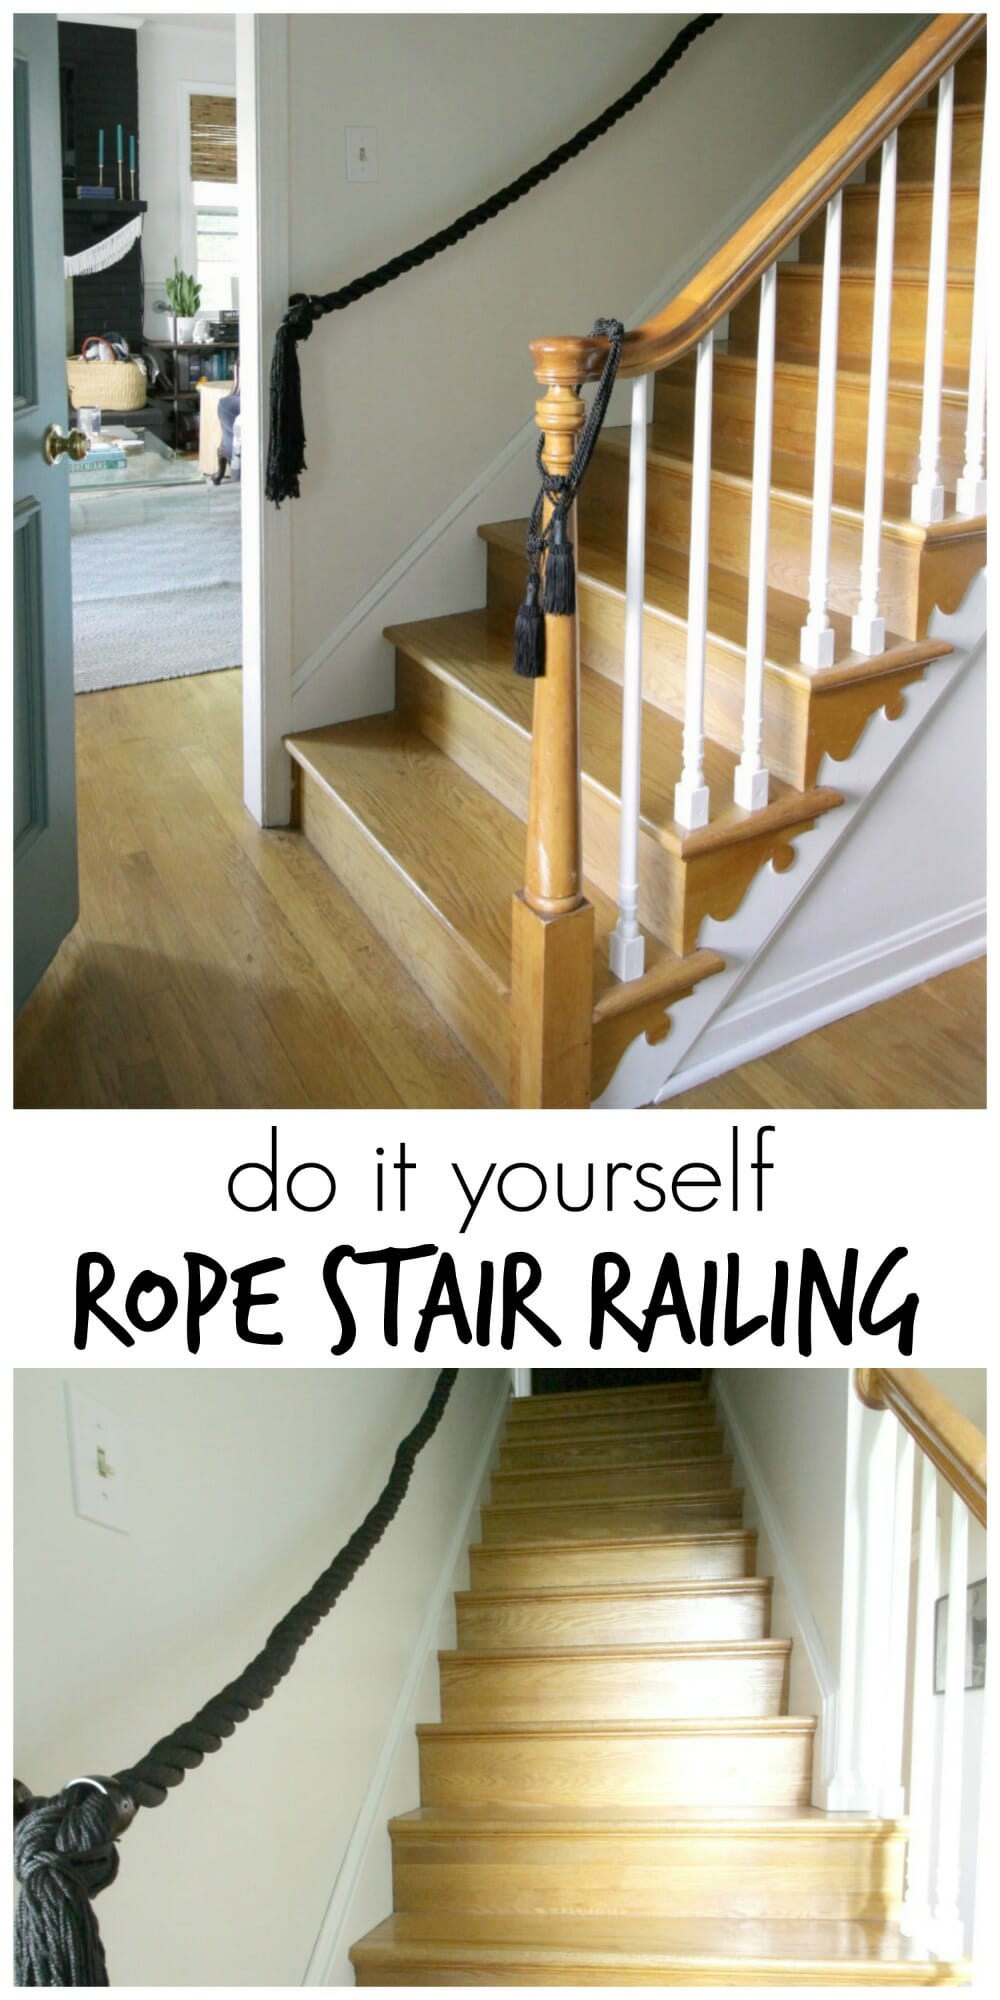 Attirant DIY Rope Stair Railing  Full Tutorial